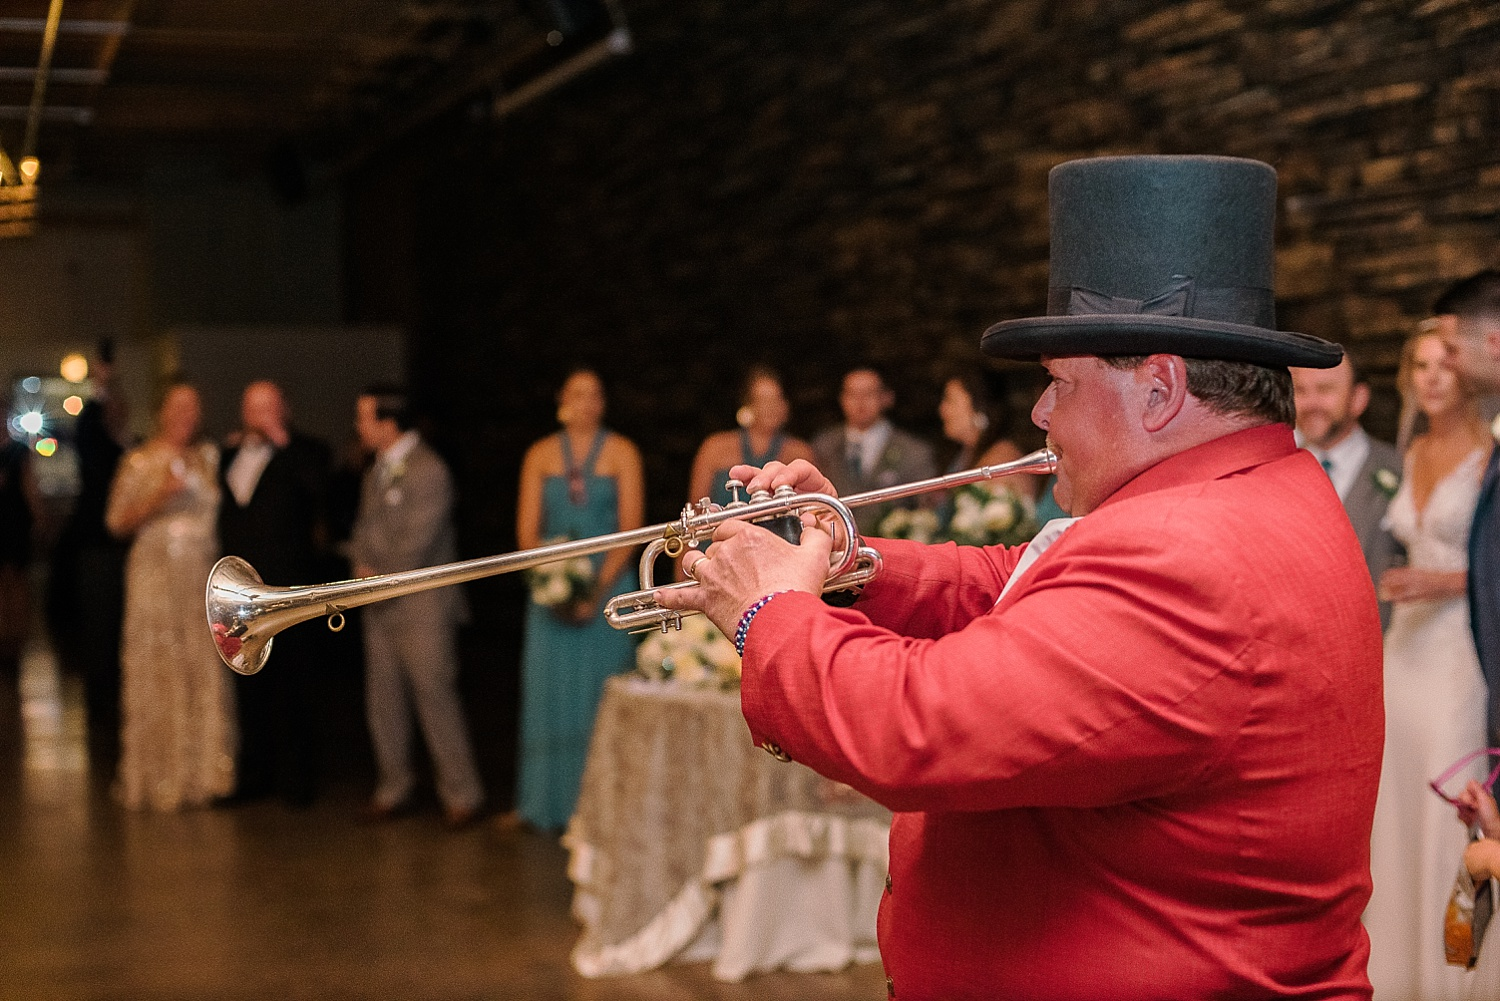 The Keeneland bugler was at the wedding! How fun is that?!